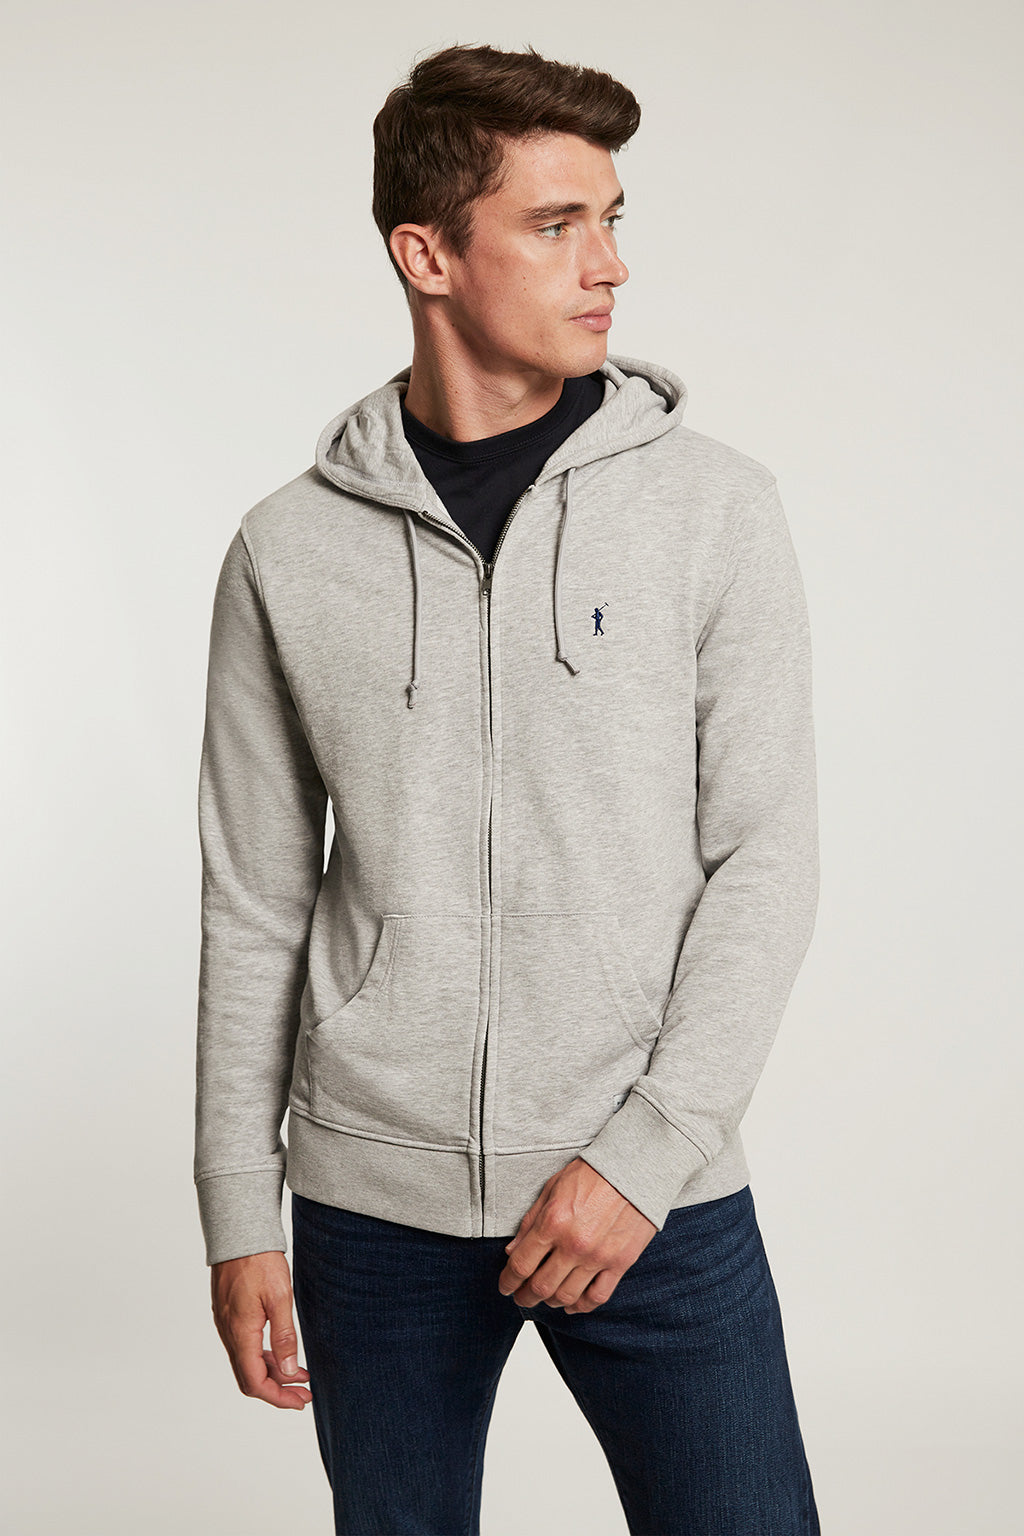 Blue grey organic sweatshirt with zip closure and contrast embroidery